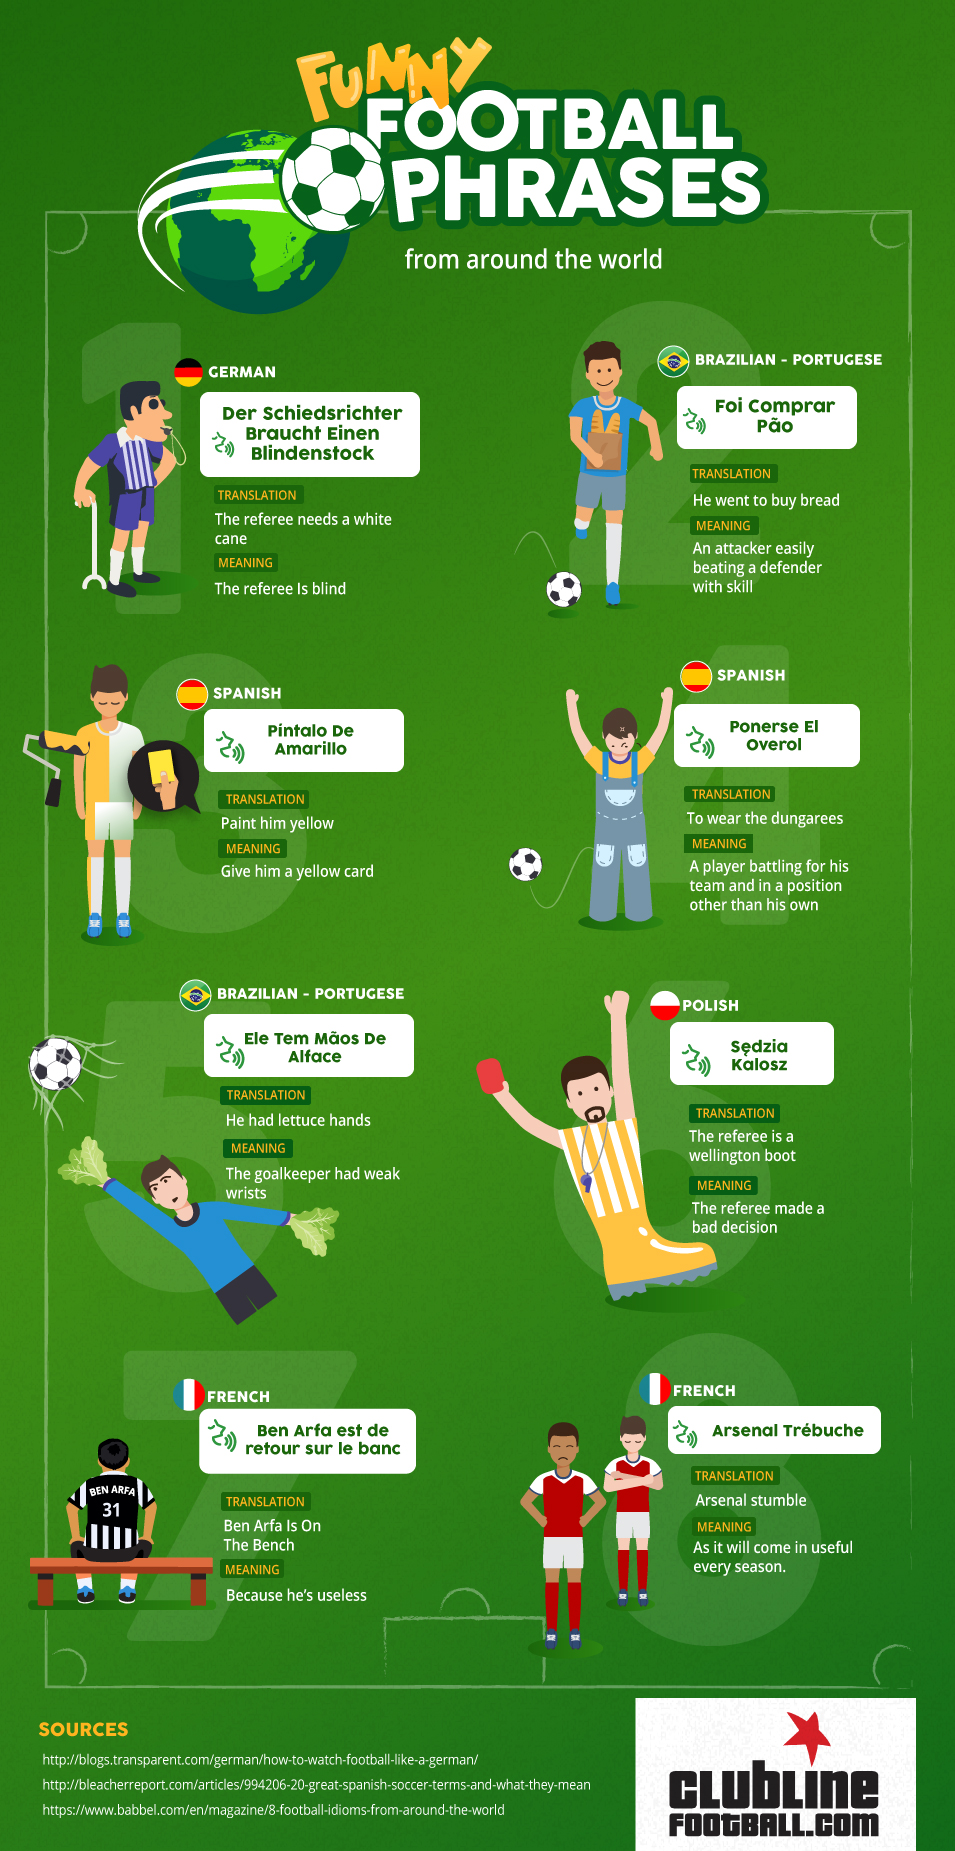 Funny Football Phrases From Around The World [Infographic]